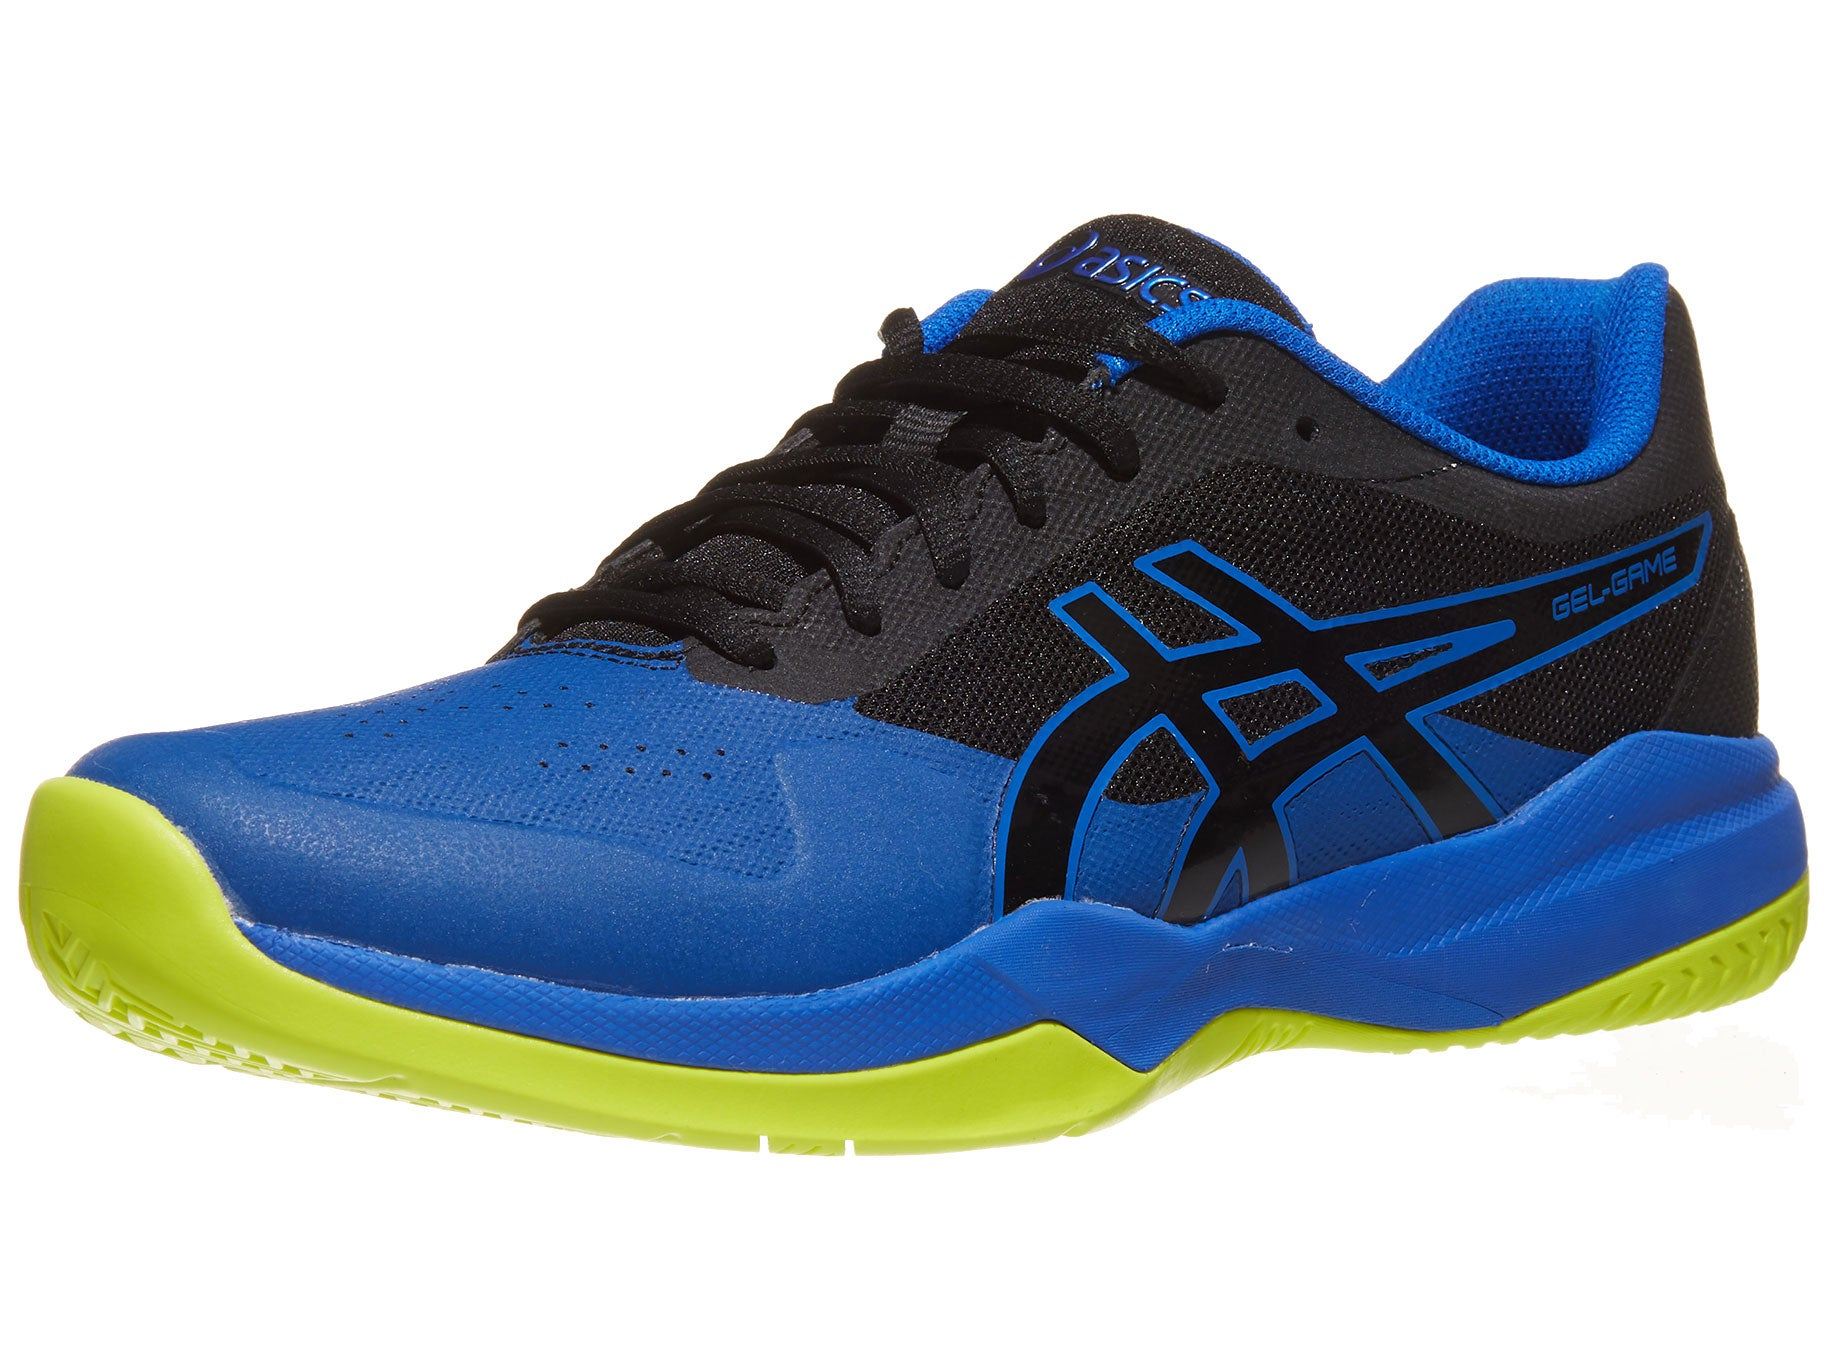 ba86839e8 Asics Mens Gel-Resolution 7 All Court Cushioned Breathable Tennis Shoes  Shoes & Trainers